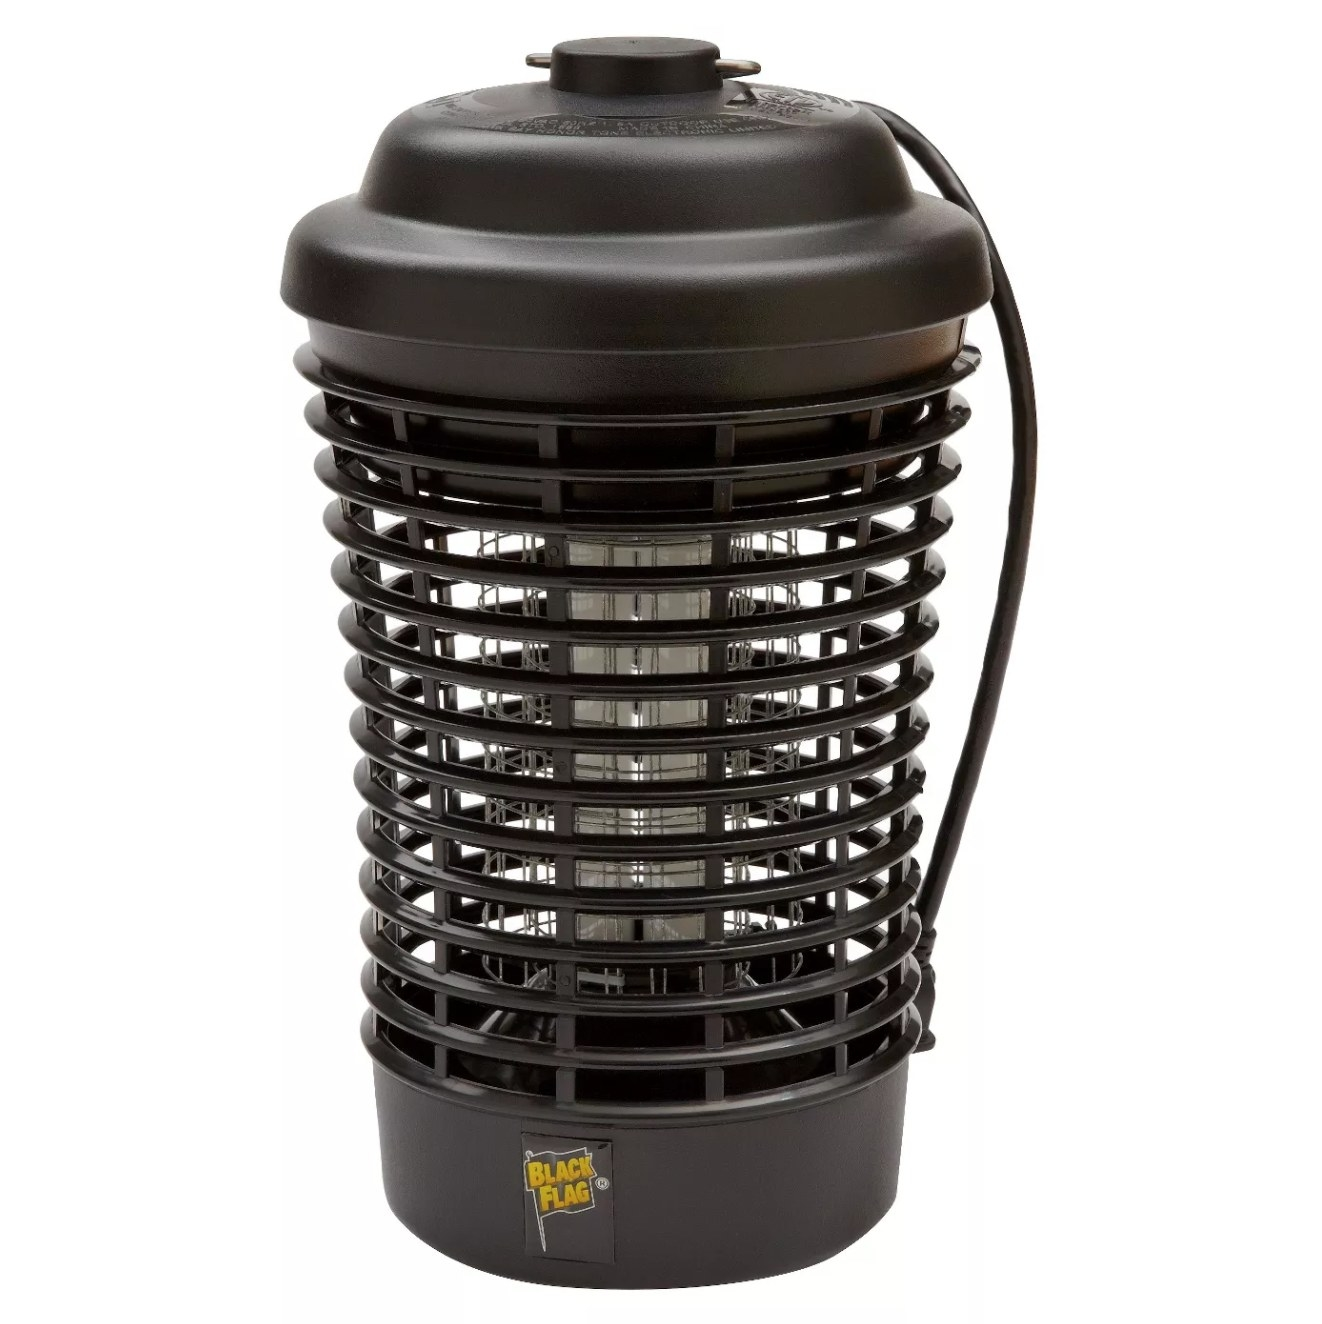 The lamp-like insect killer